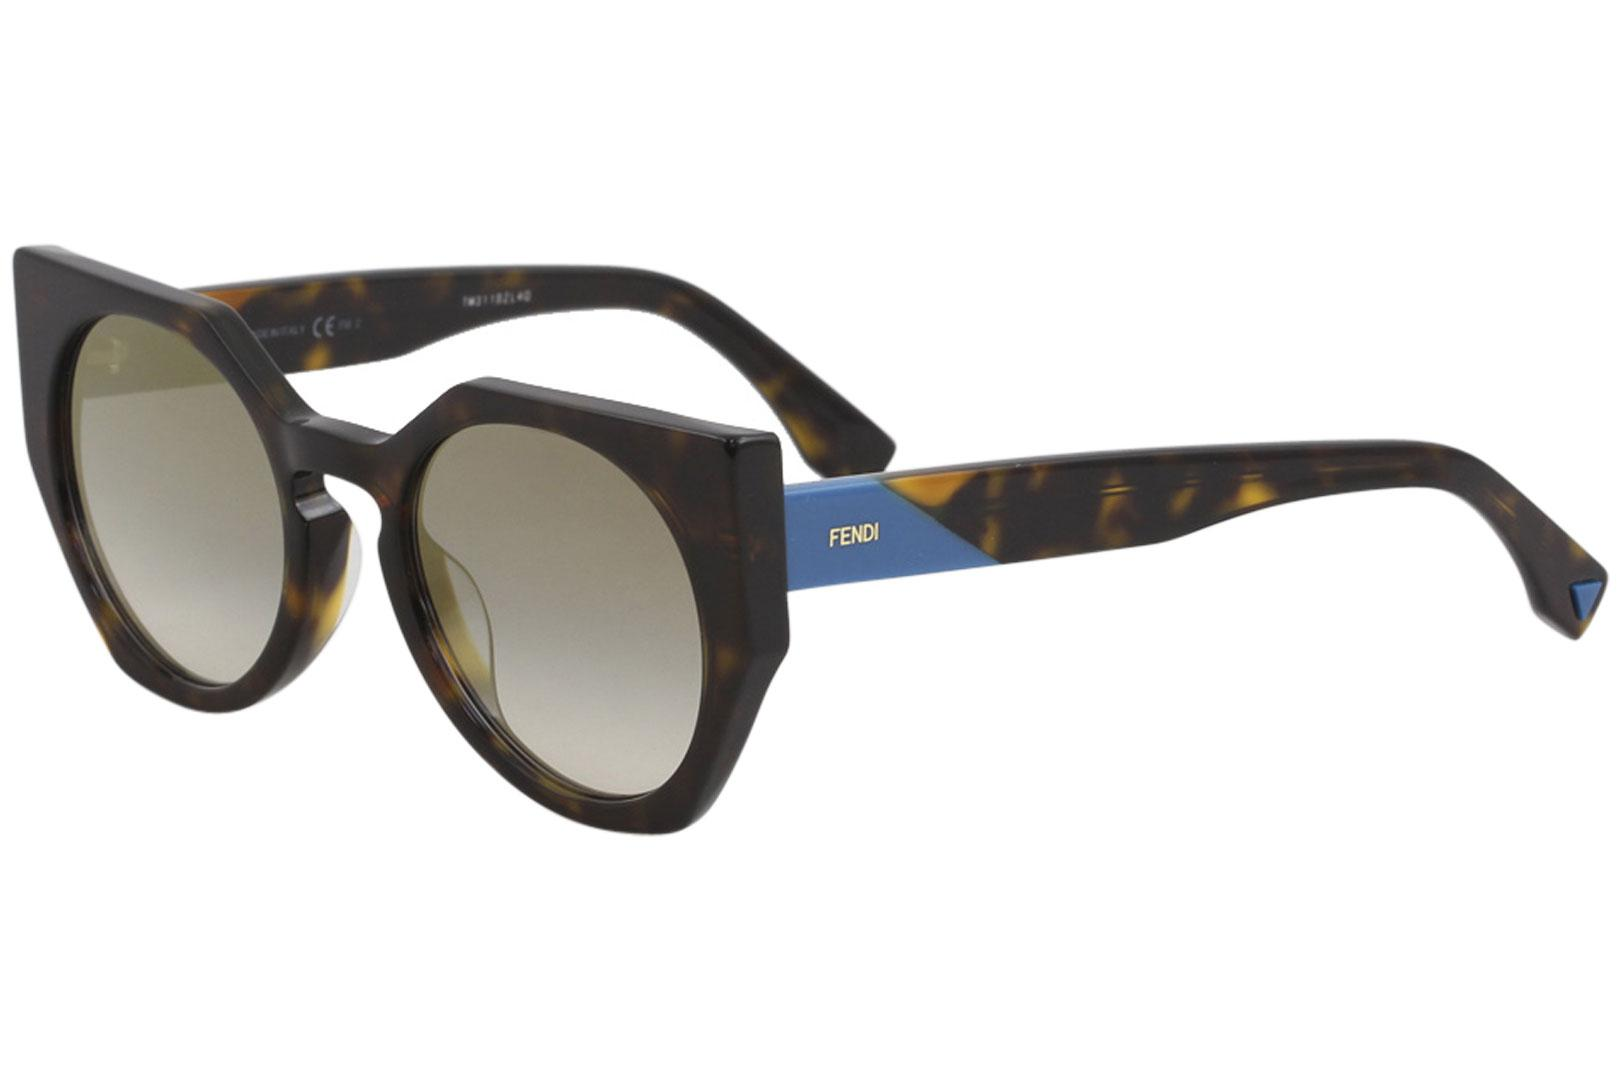 8253a50729 Fendi Women's FF0151S FF/0151/S Fashion Round Sunglasses